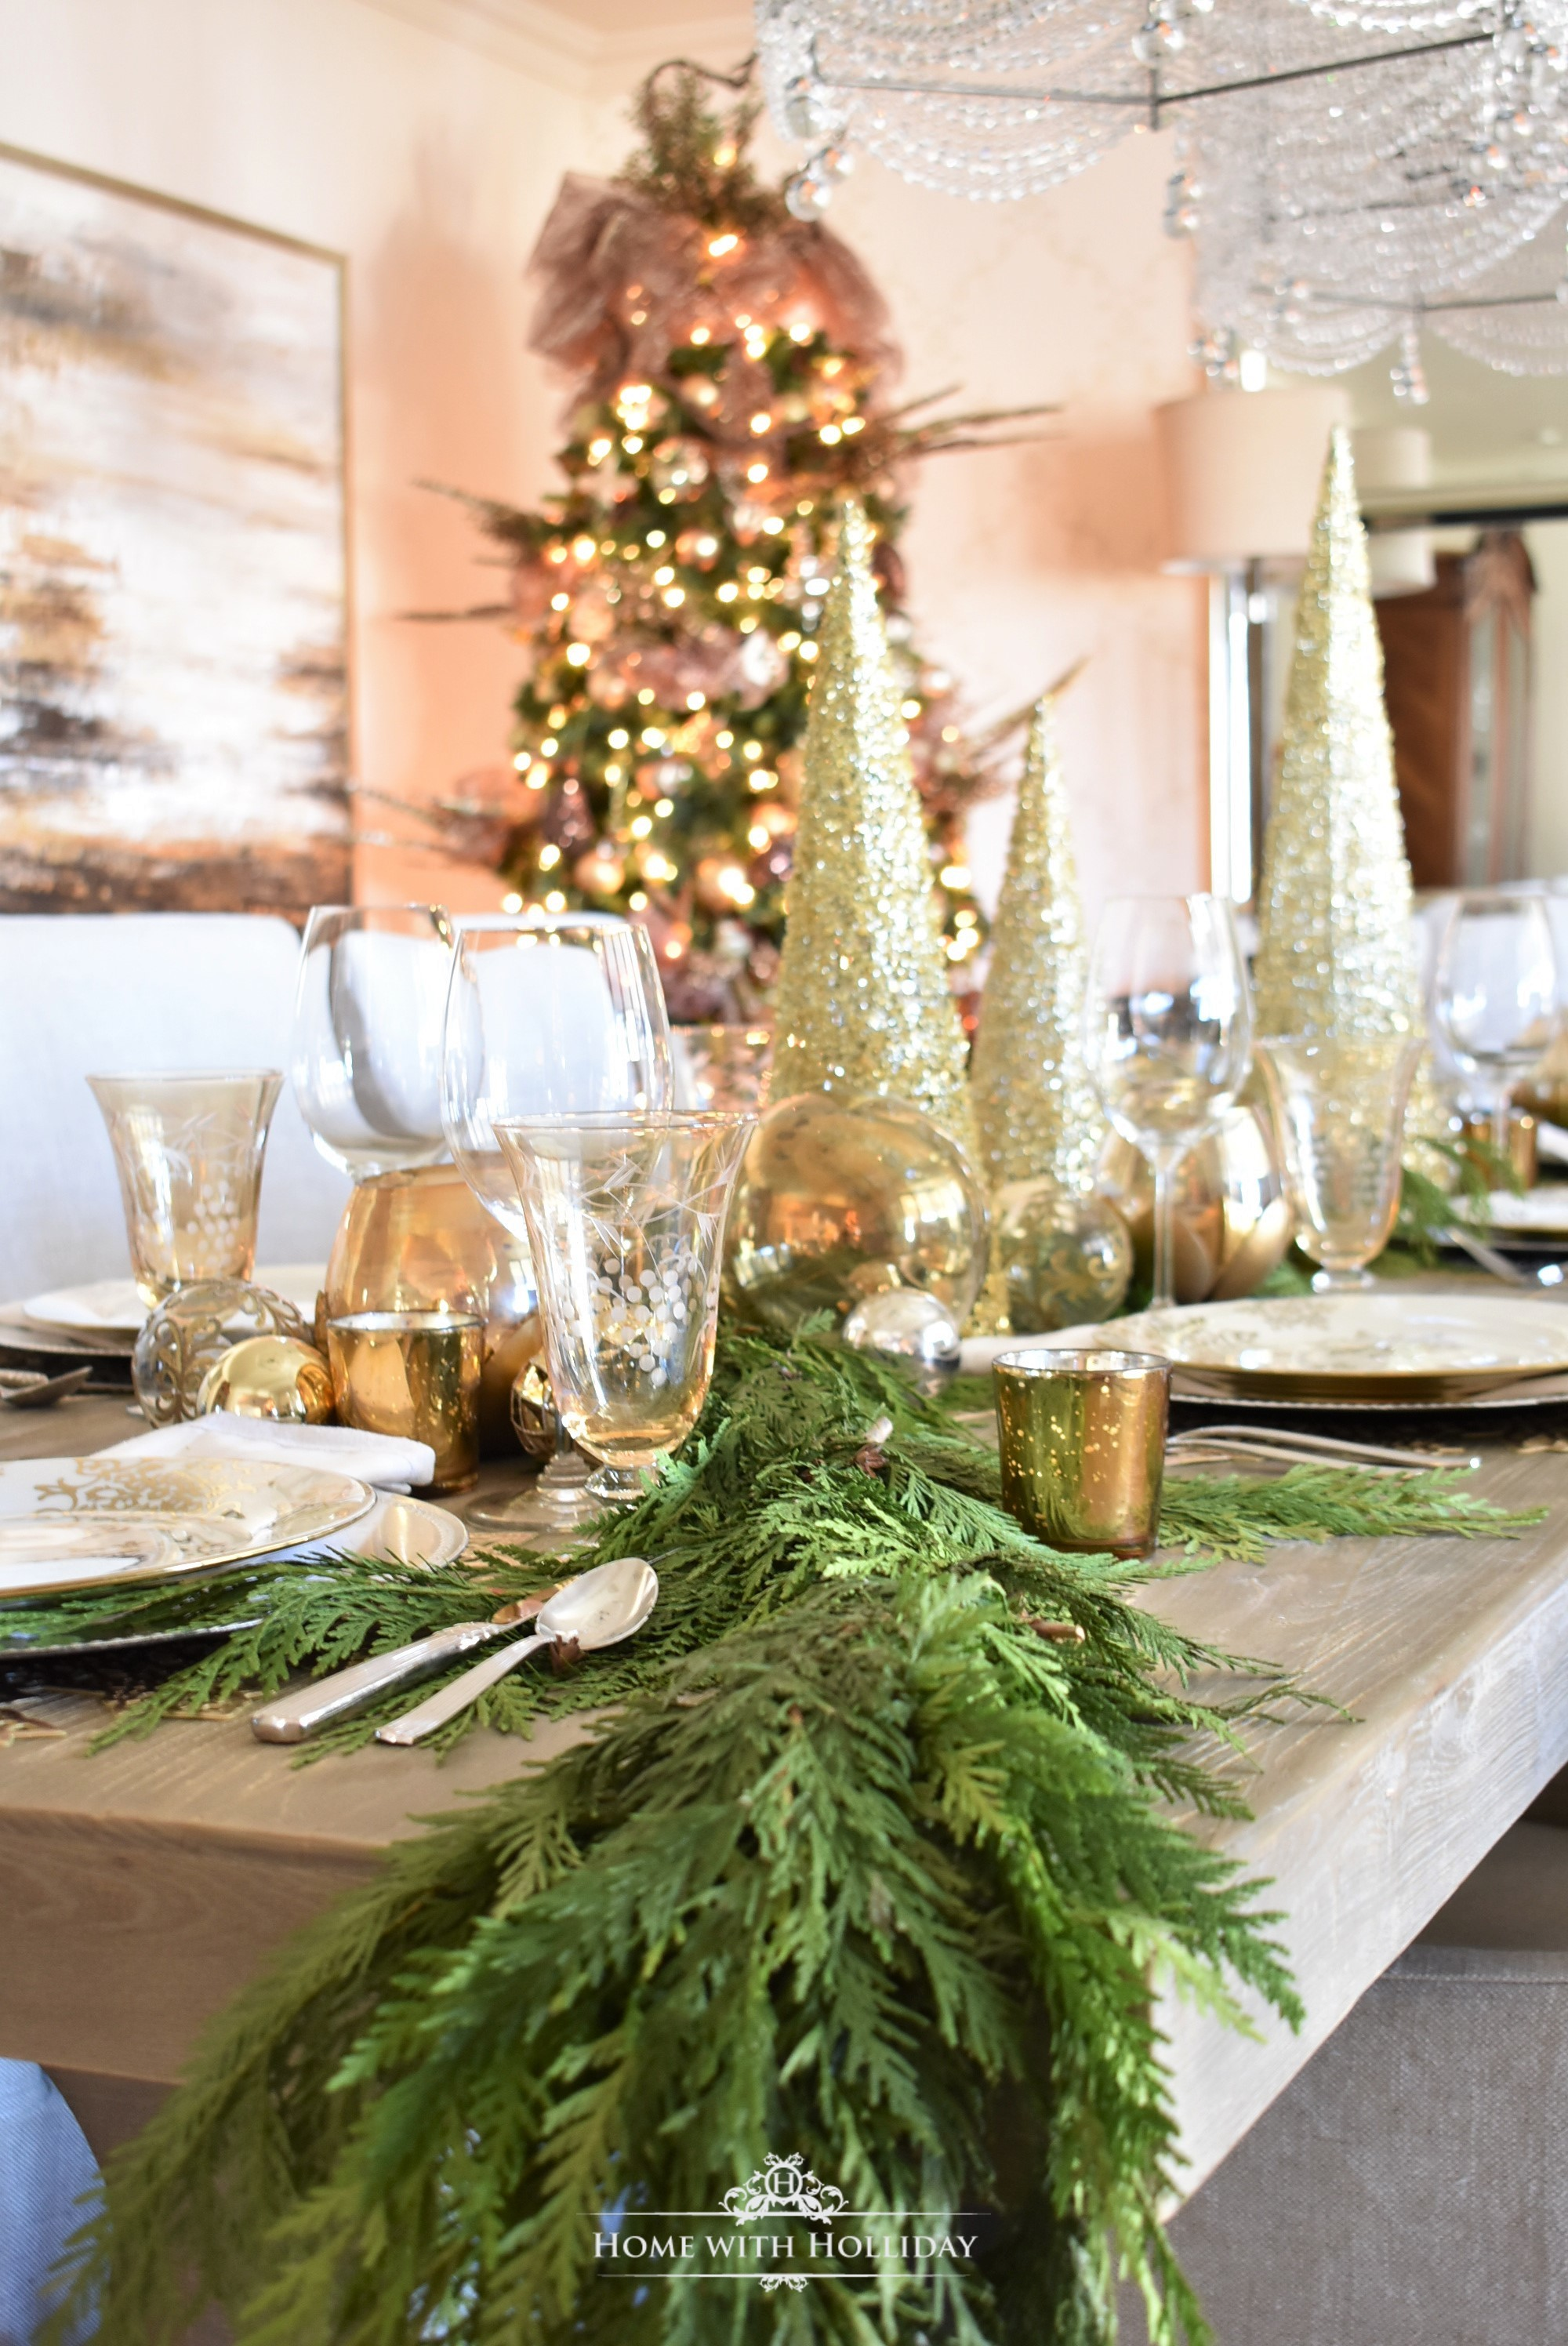 Greenery for my Gold and Silver Snowflake Christmas Table Setting - Home with Holliday